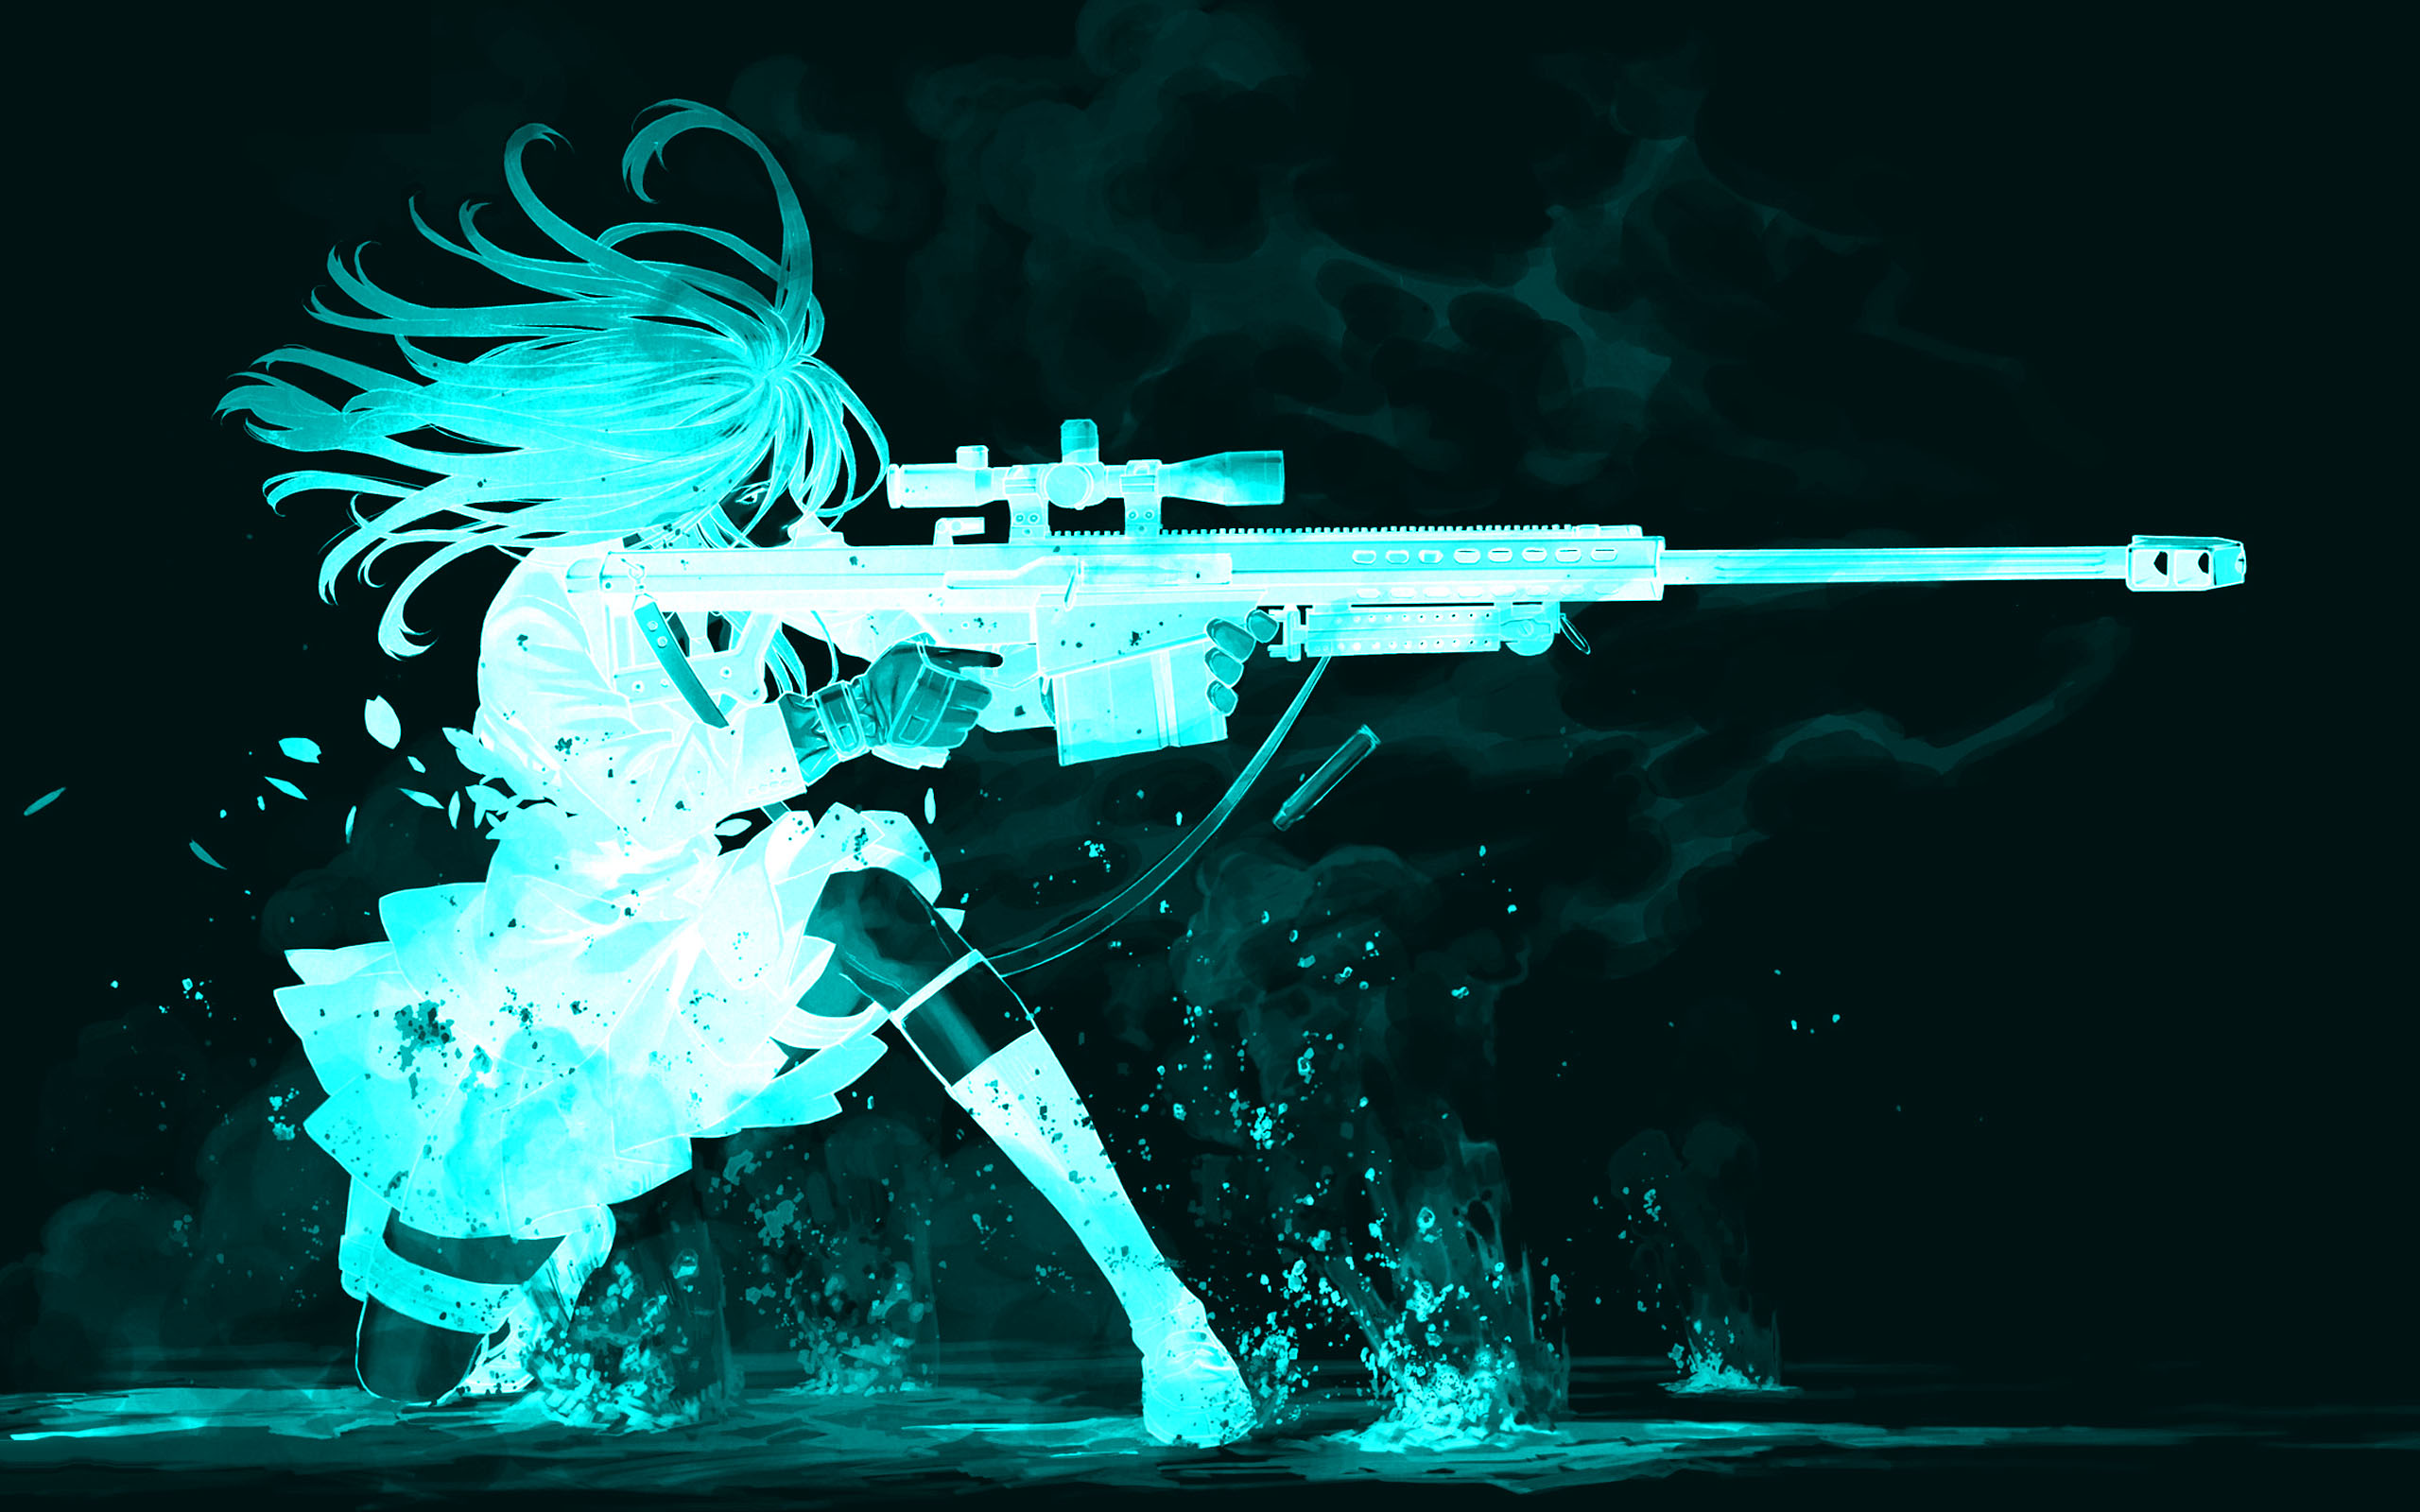 Galleries Related Cool Gun Wallpaper Awesome Backgrounds 2560x1600